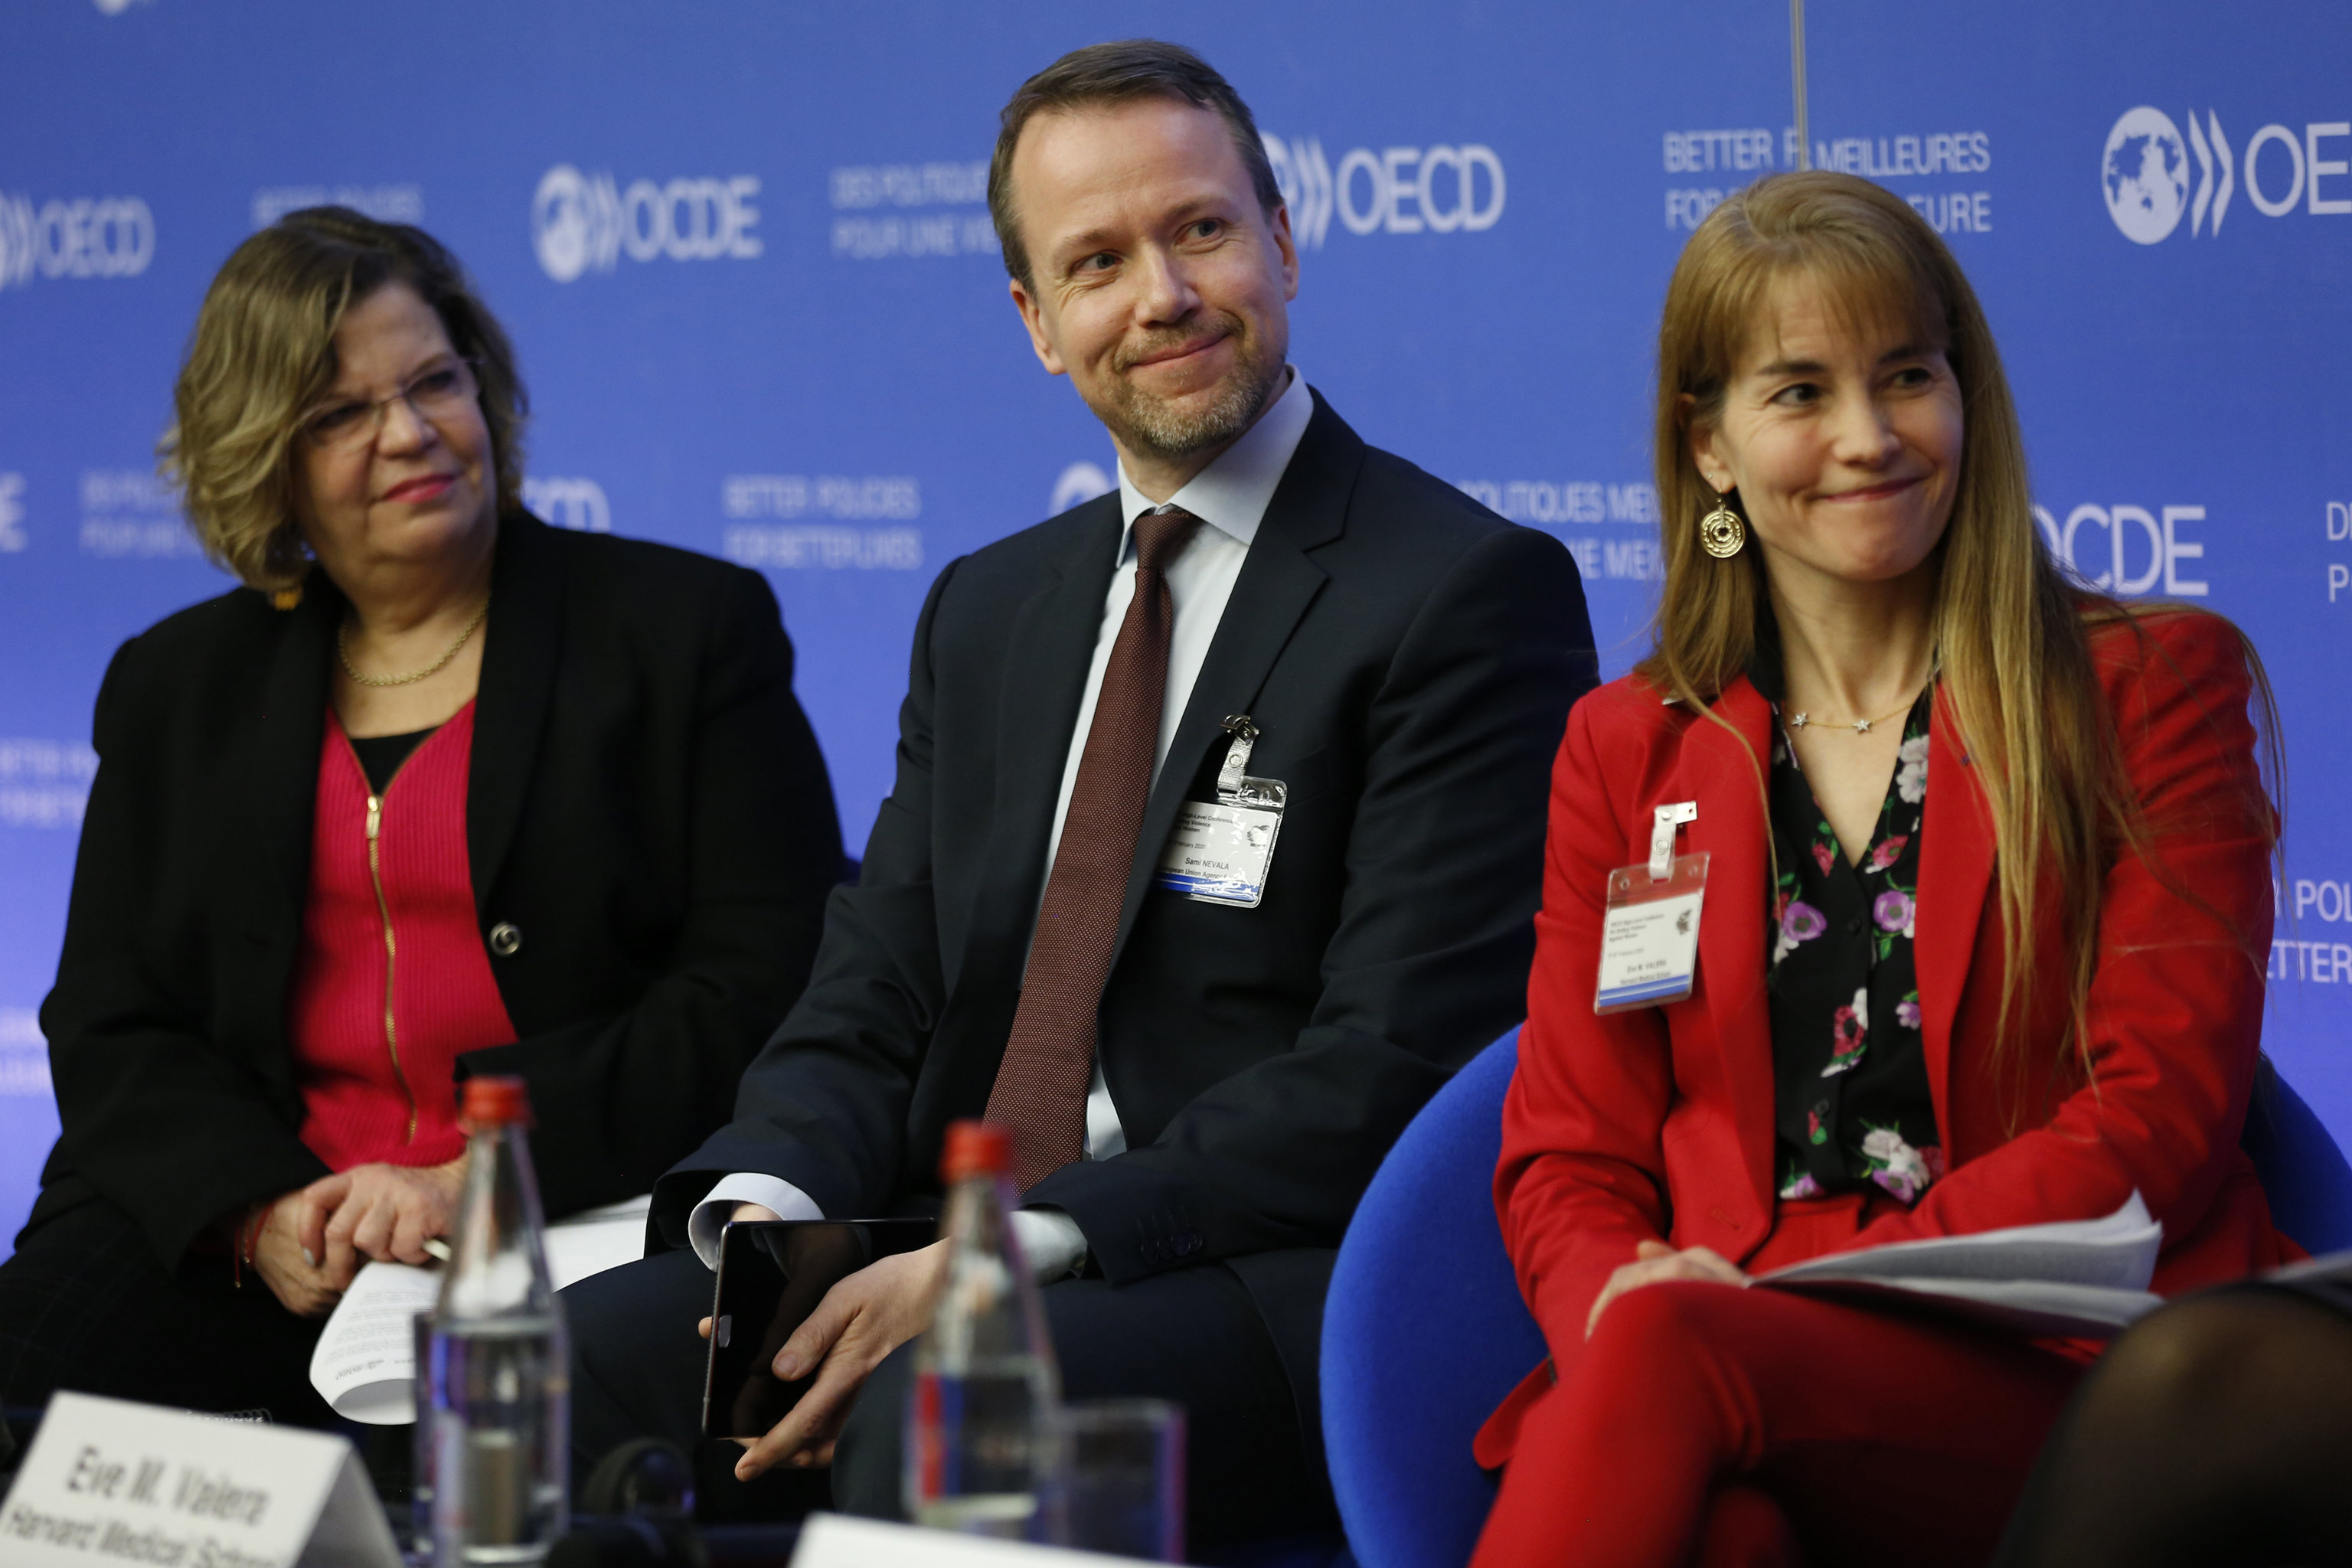 Dr. Valera Speaks at OECD High-Level Conference on Ending Violence Against Women